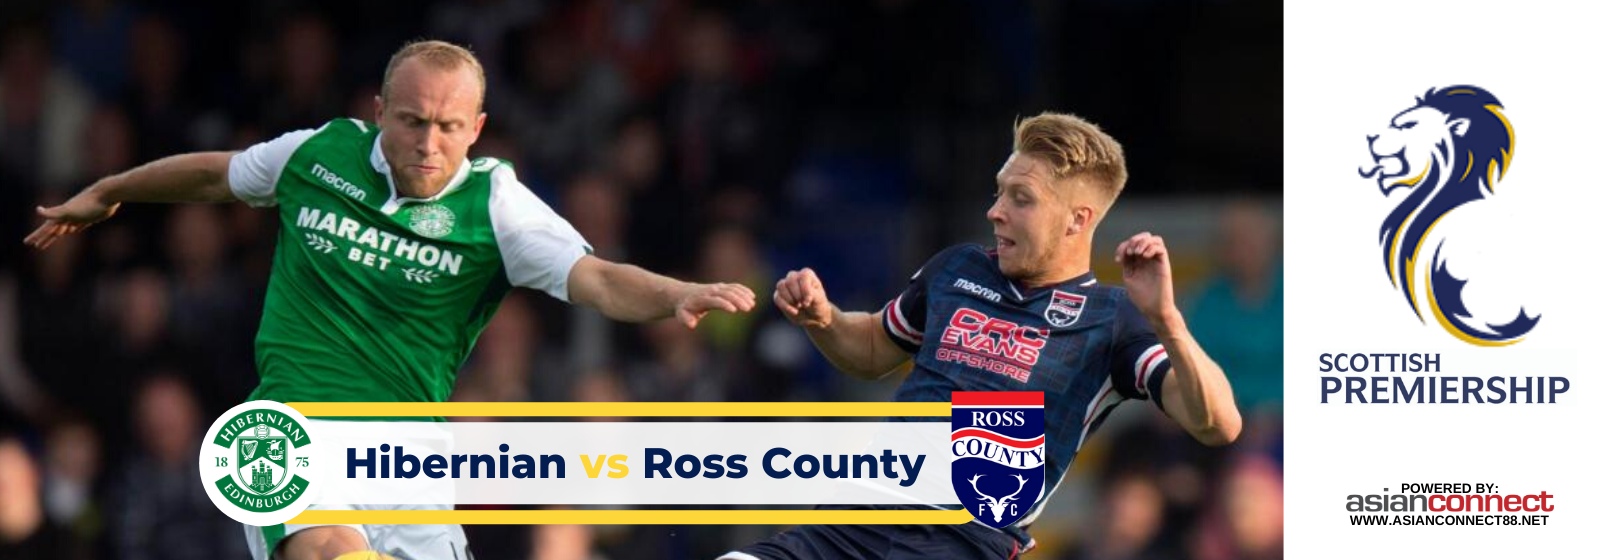 Asianconnect: Hibernian vs Ross County Odds for February 12, 2020